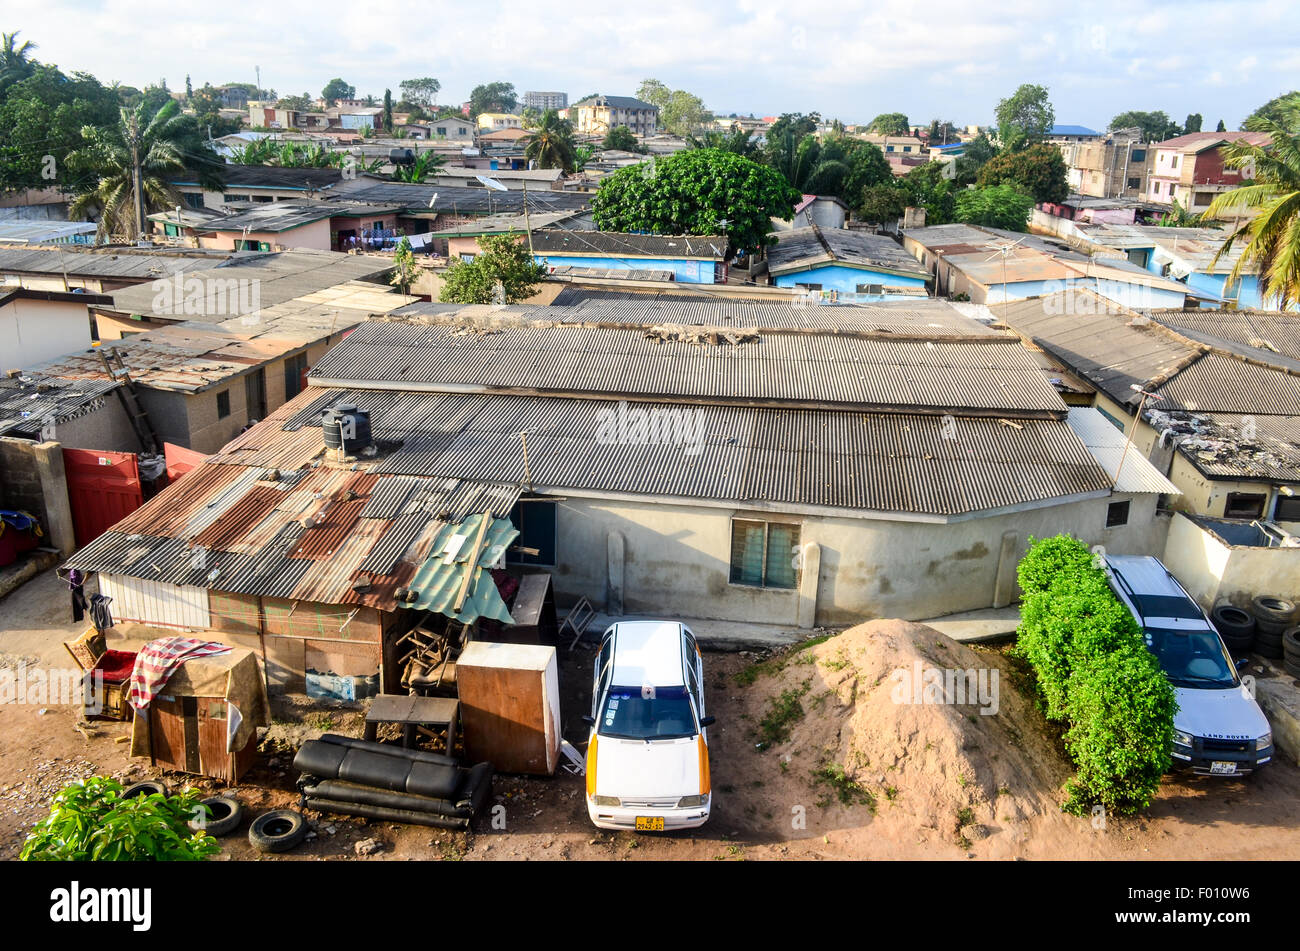 Aerial view of a neighborhood in the west of Accra, Ghana - Stock Image